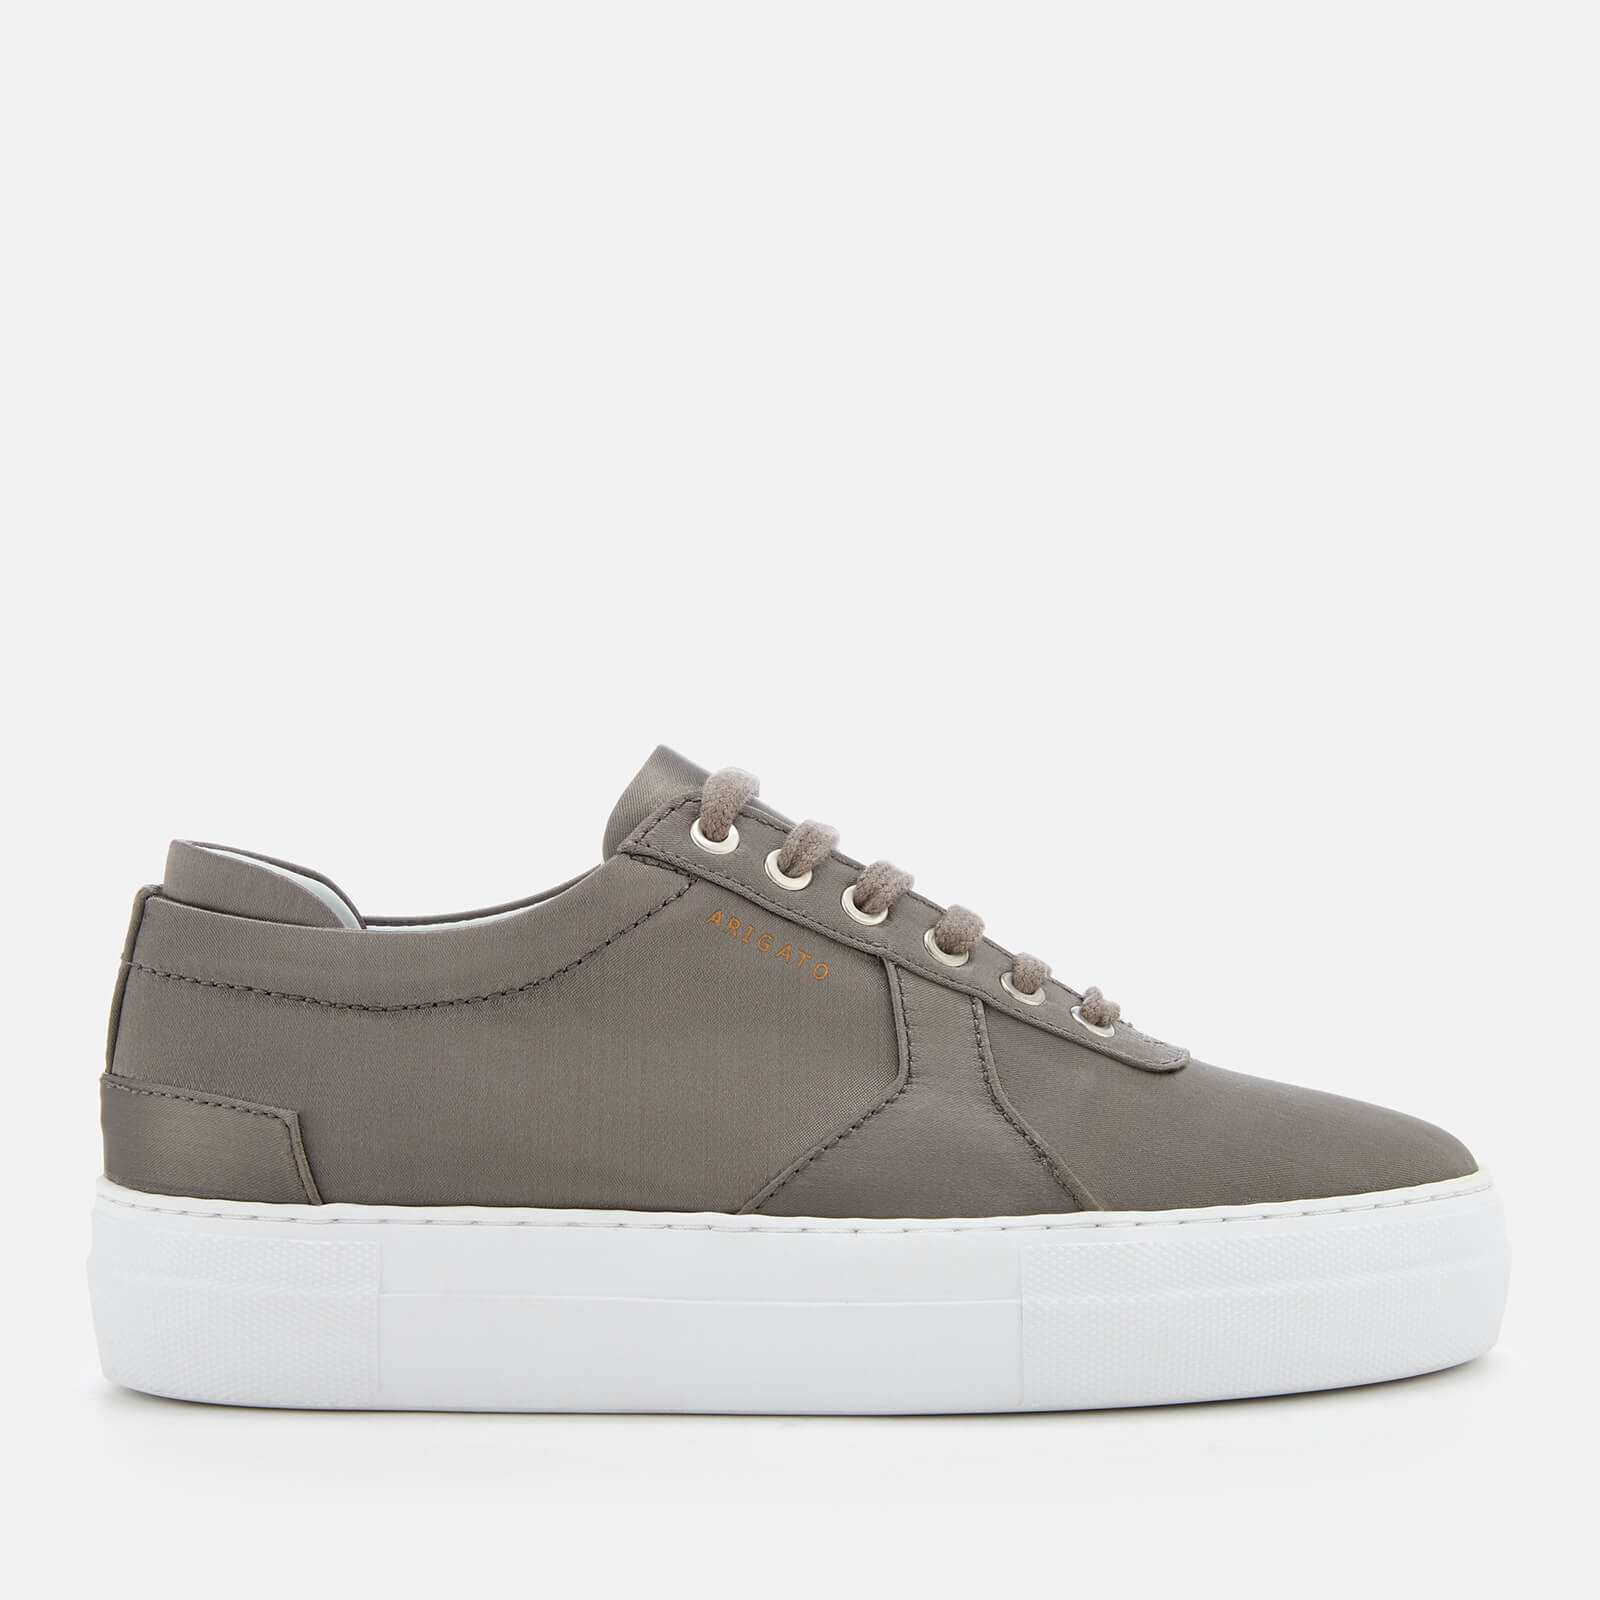 8565fa57d9c Axel Arigato Women s Platform Satin Trainers - Military - Free UK Delivery  over £50